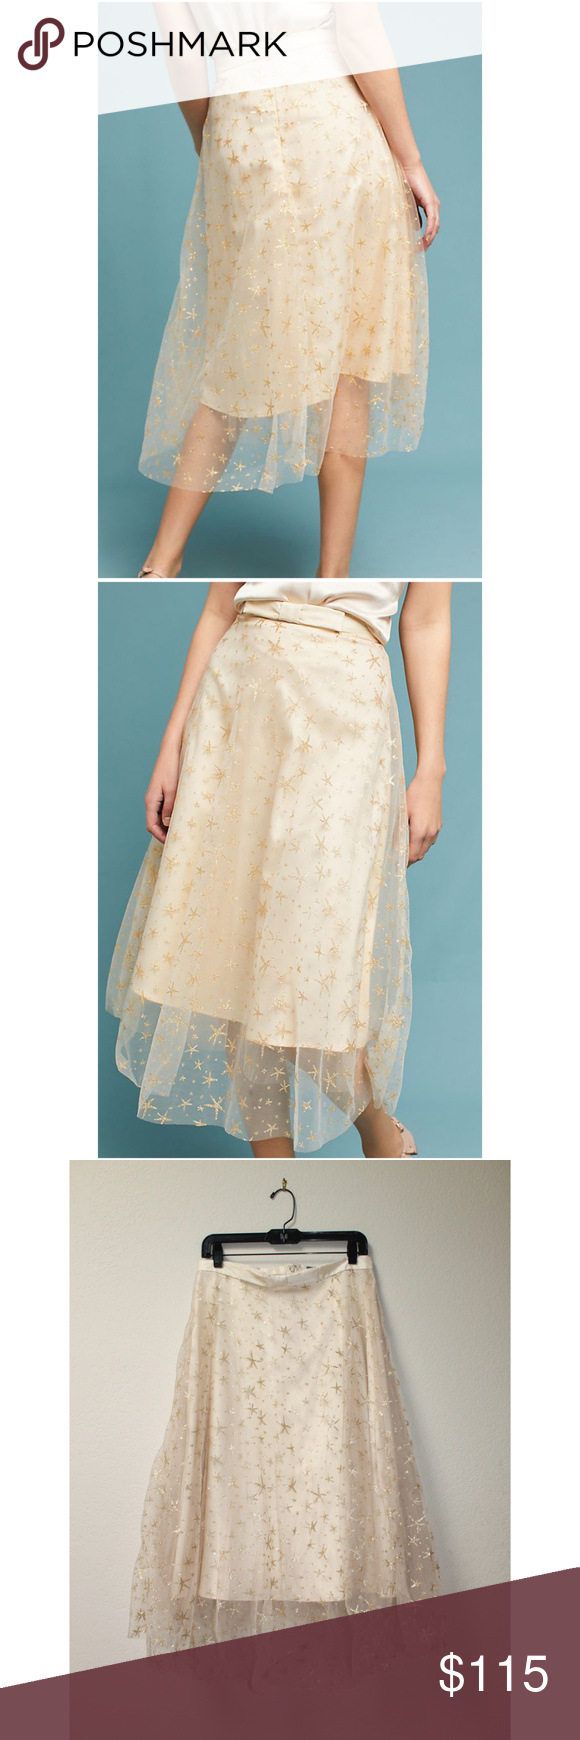 ae0ad366f Anthropologie EVA FRANCO Gold Star Tulle Skirt 12 EVA FRANCO Metallic Star Tulle  Skirt from Anthropologie Size 12 New with tag No offers please ...